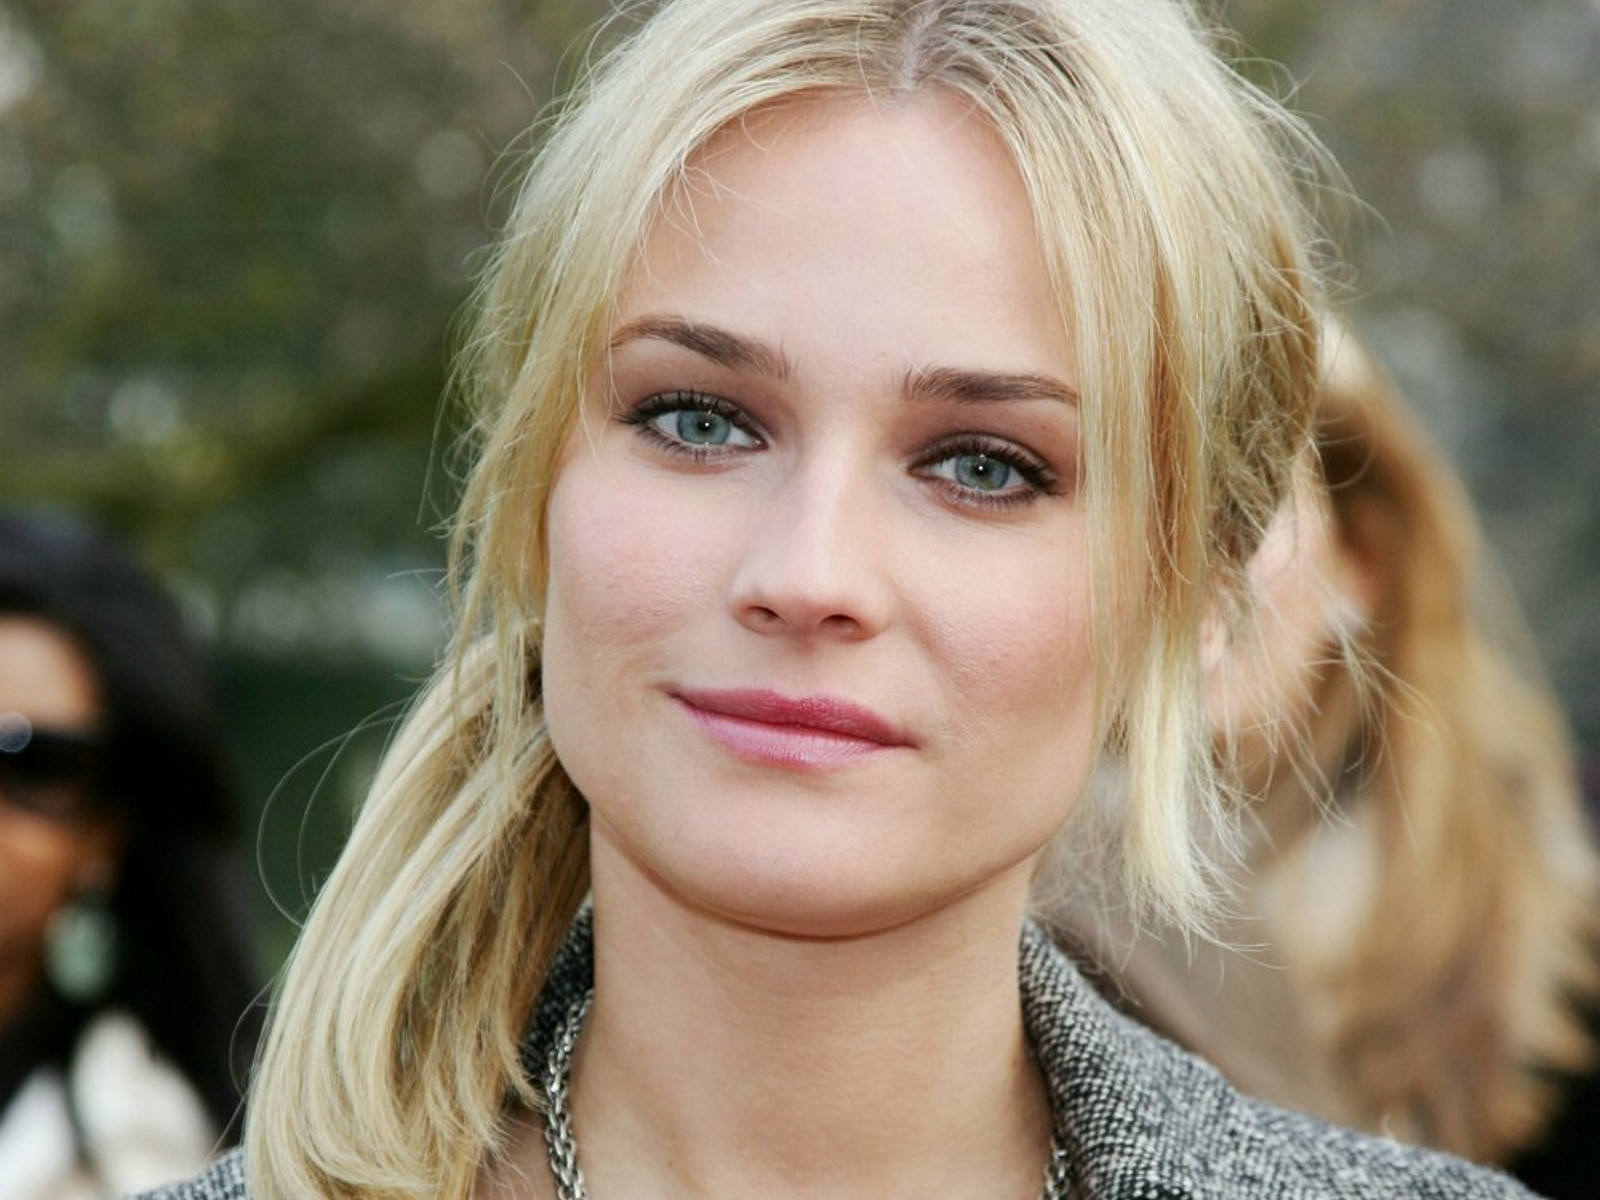 View and Free Download Diane Kruger Wallpapers.